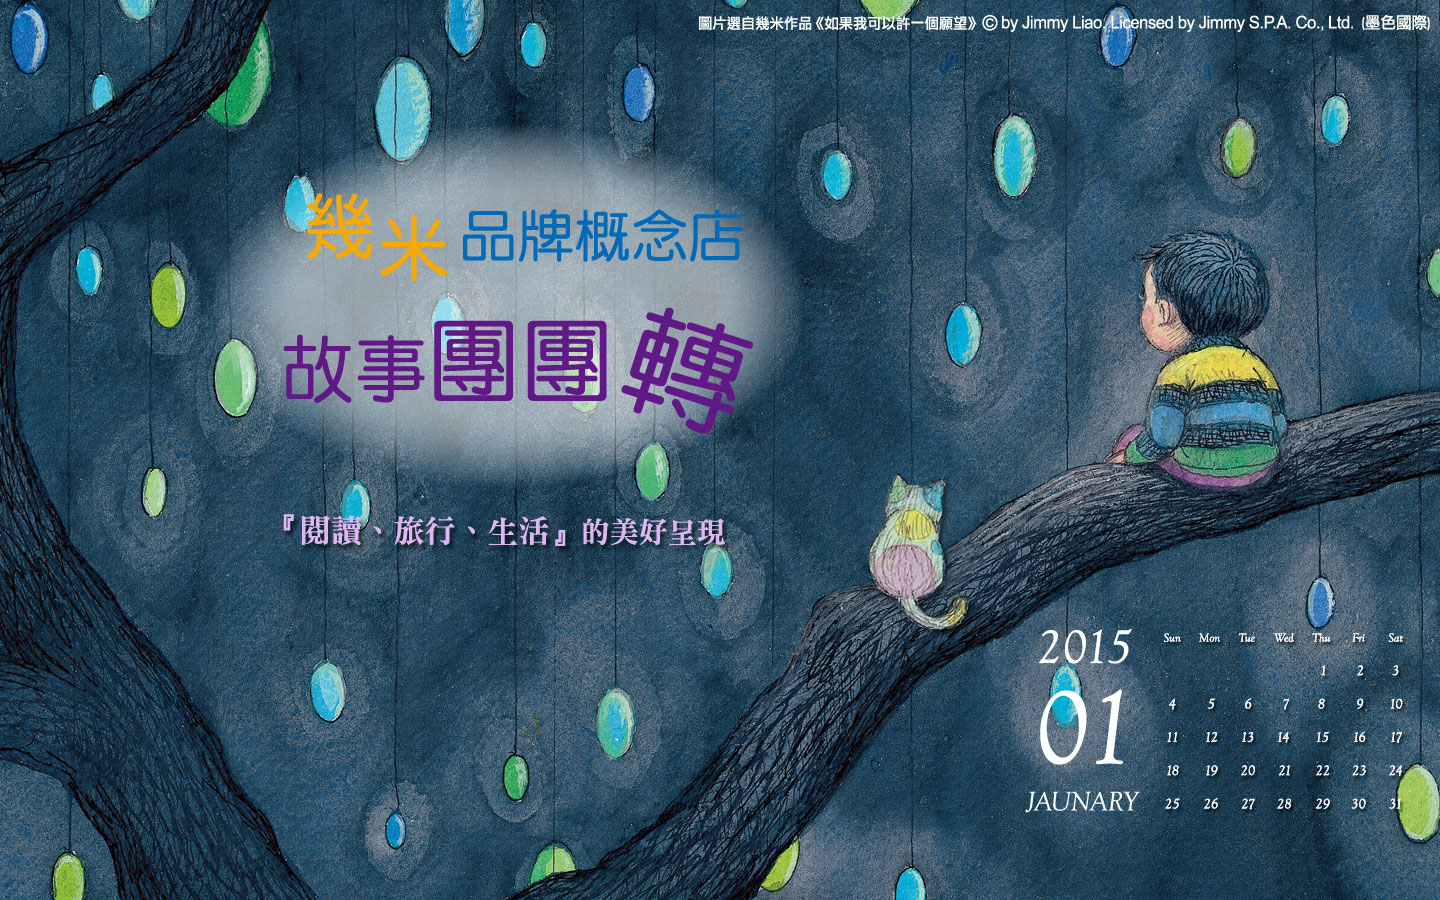 In January Calendar Wallpaper 51348